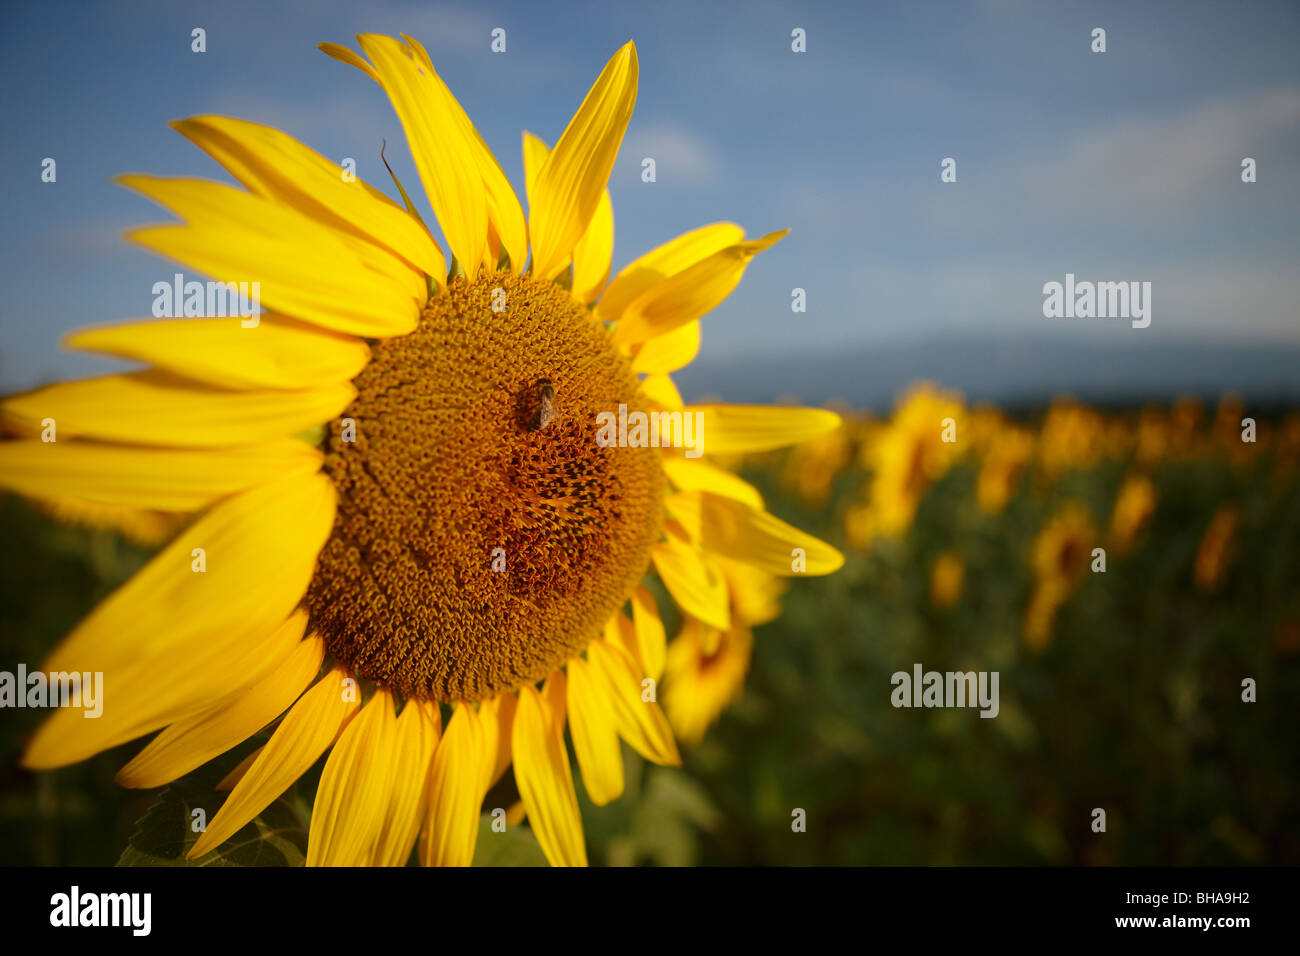 a field of sunflowers nr Puyloubier, Bouches-du-Rhone, Provence, France - Stock Image